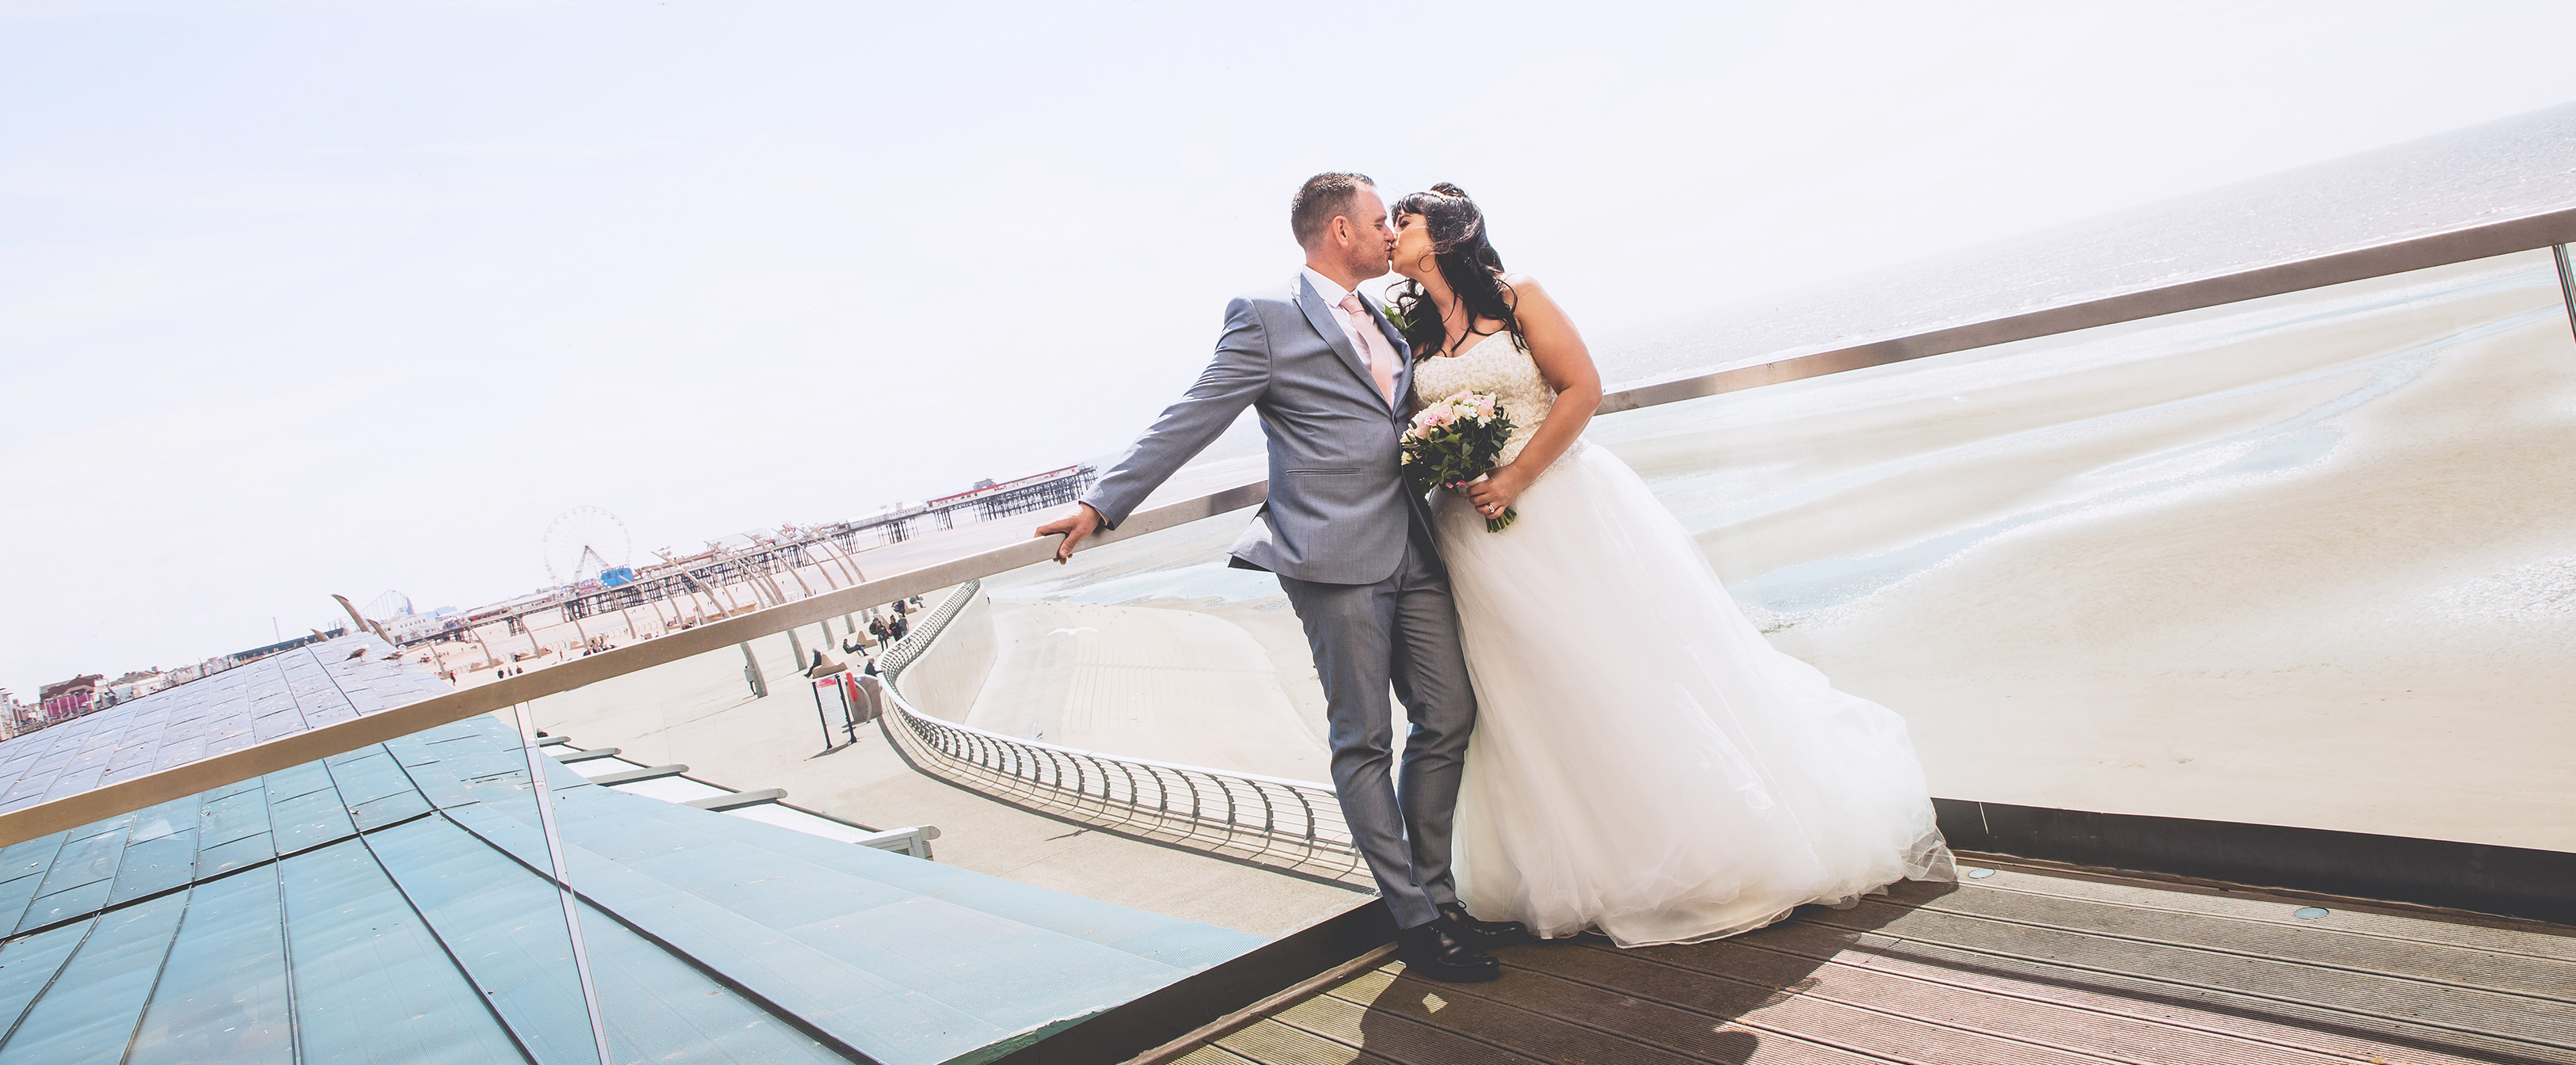 wedding photography blackpool